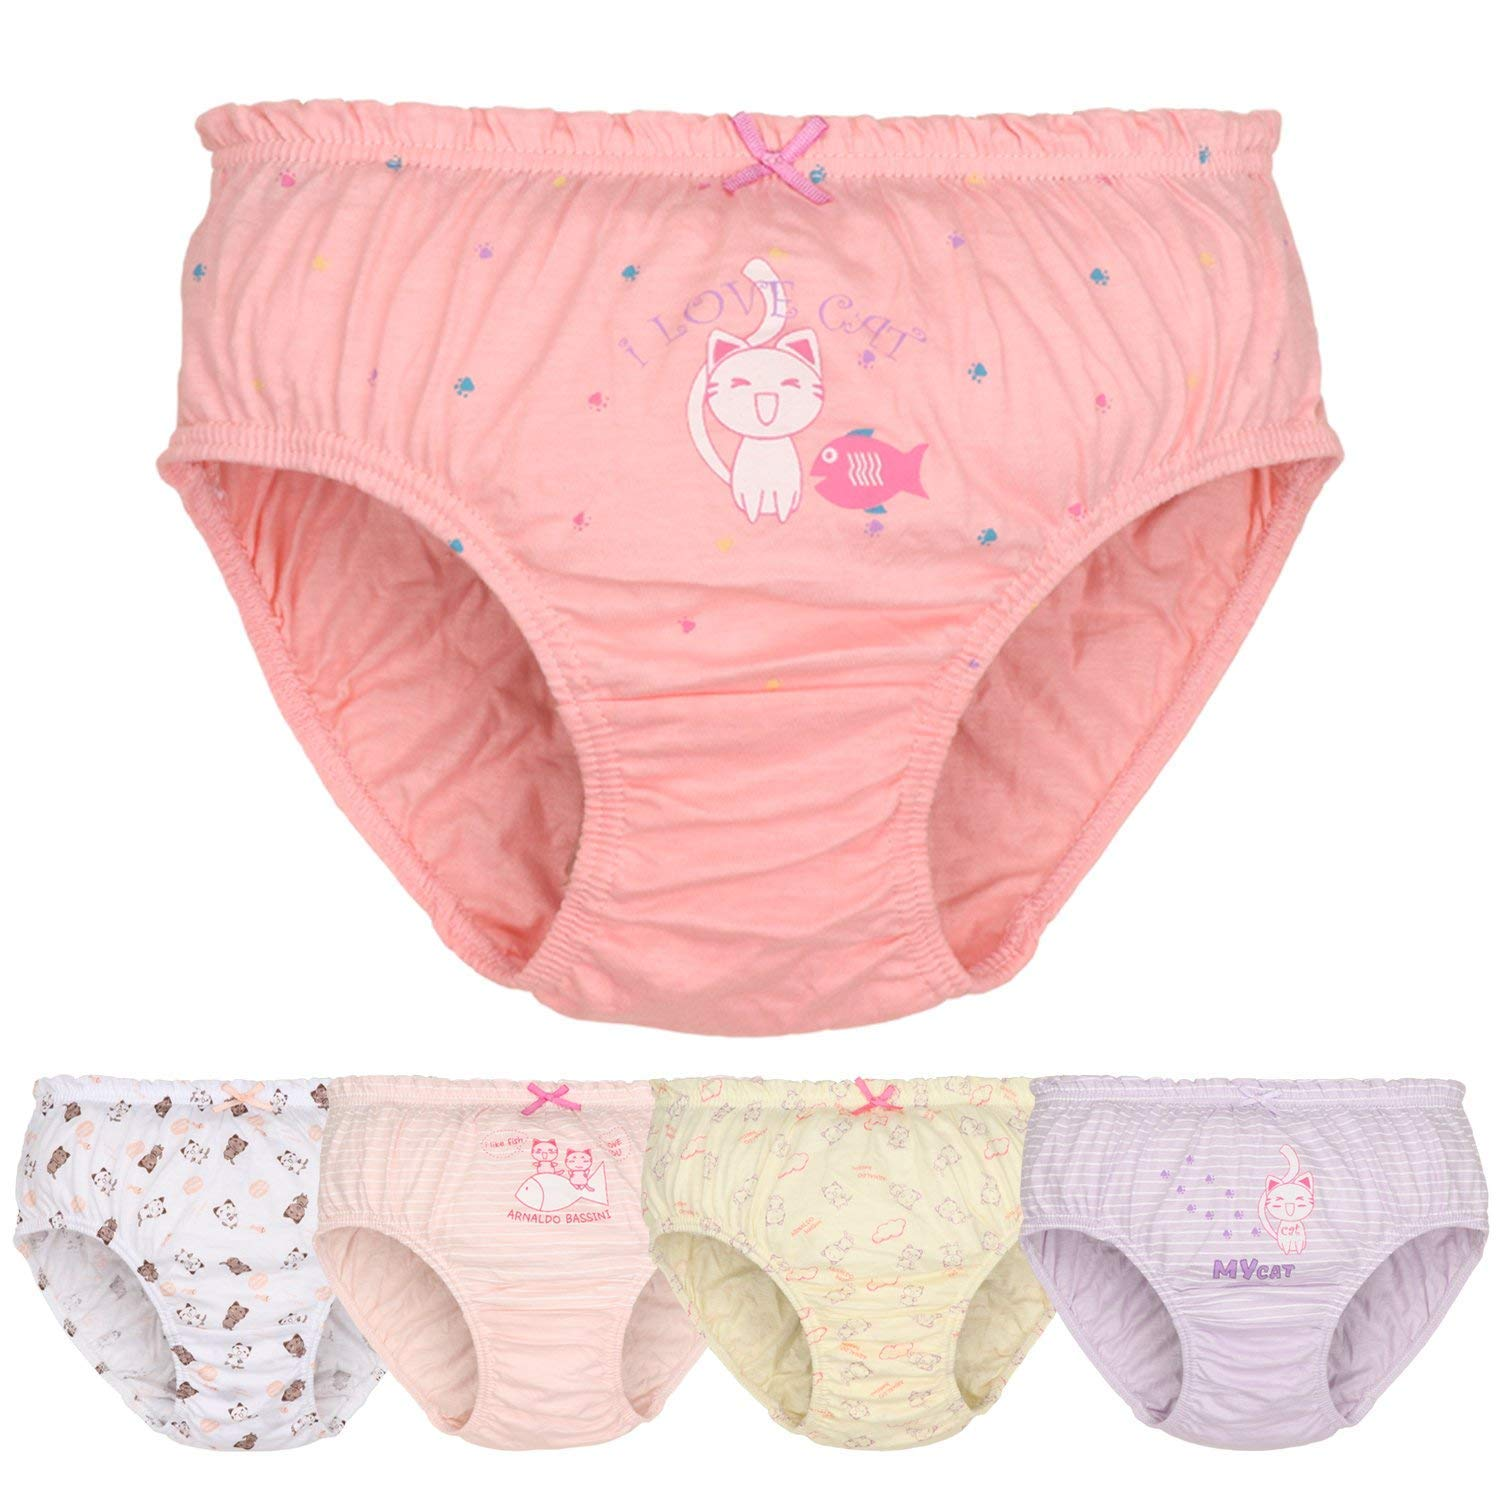 DVANIS Girls' Kitty Knickers 100% Cotton Cat Underwear Assorted Pink 5 Pack 2-7 Years